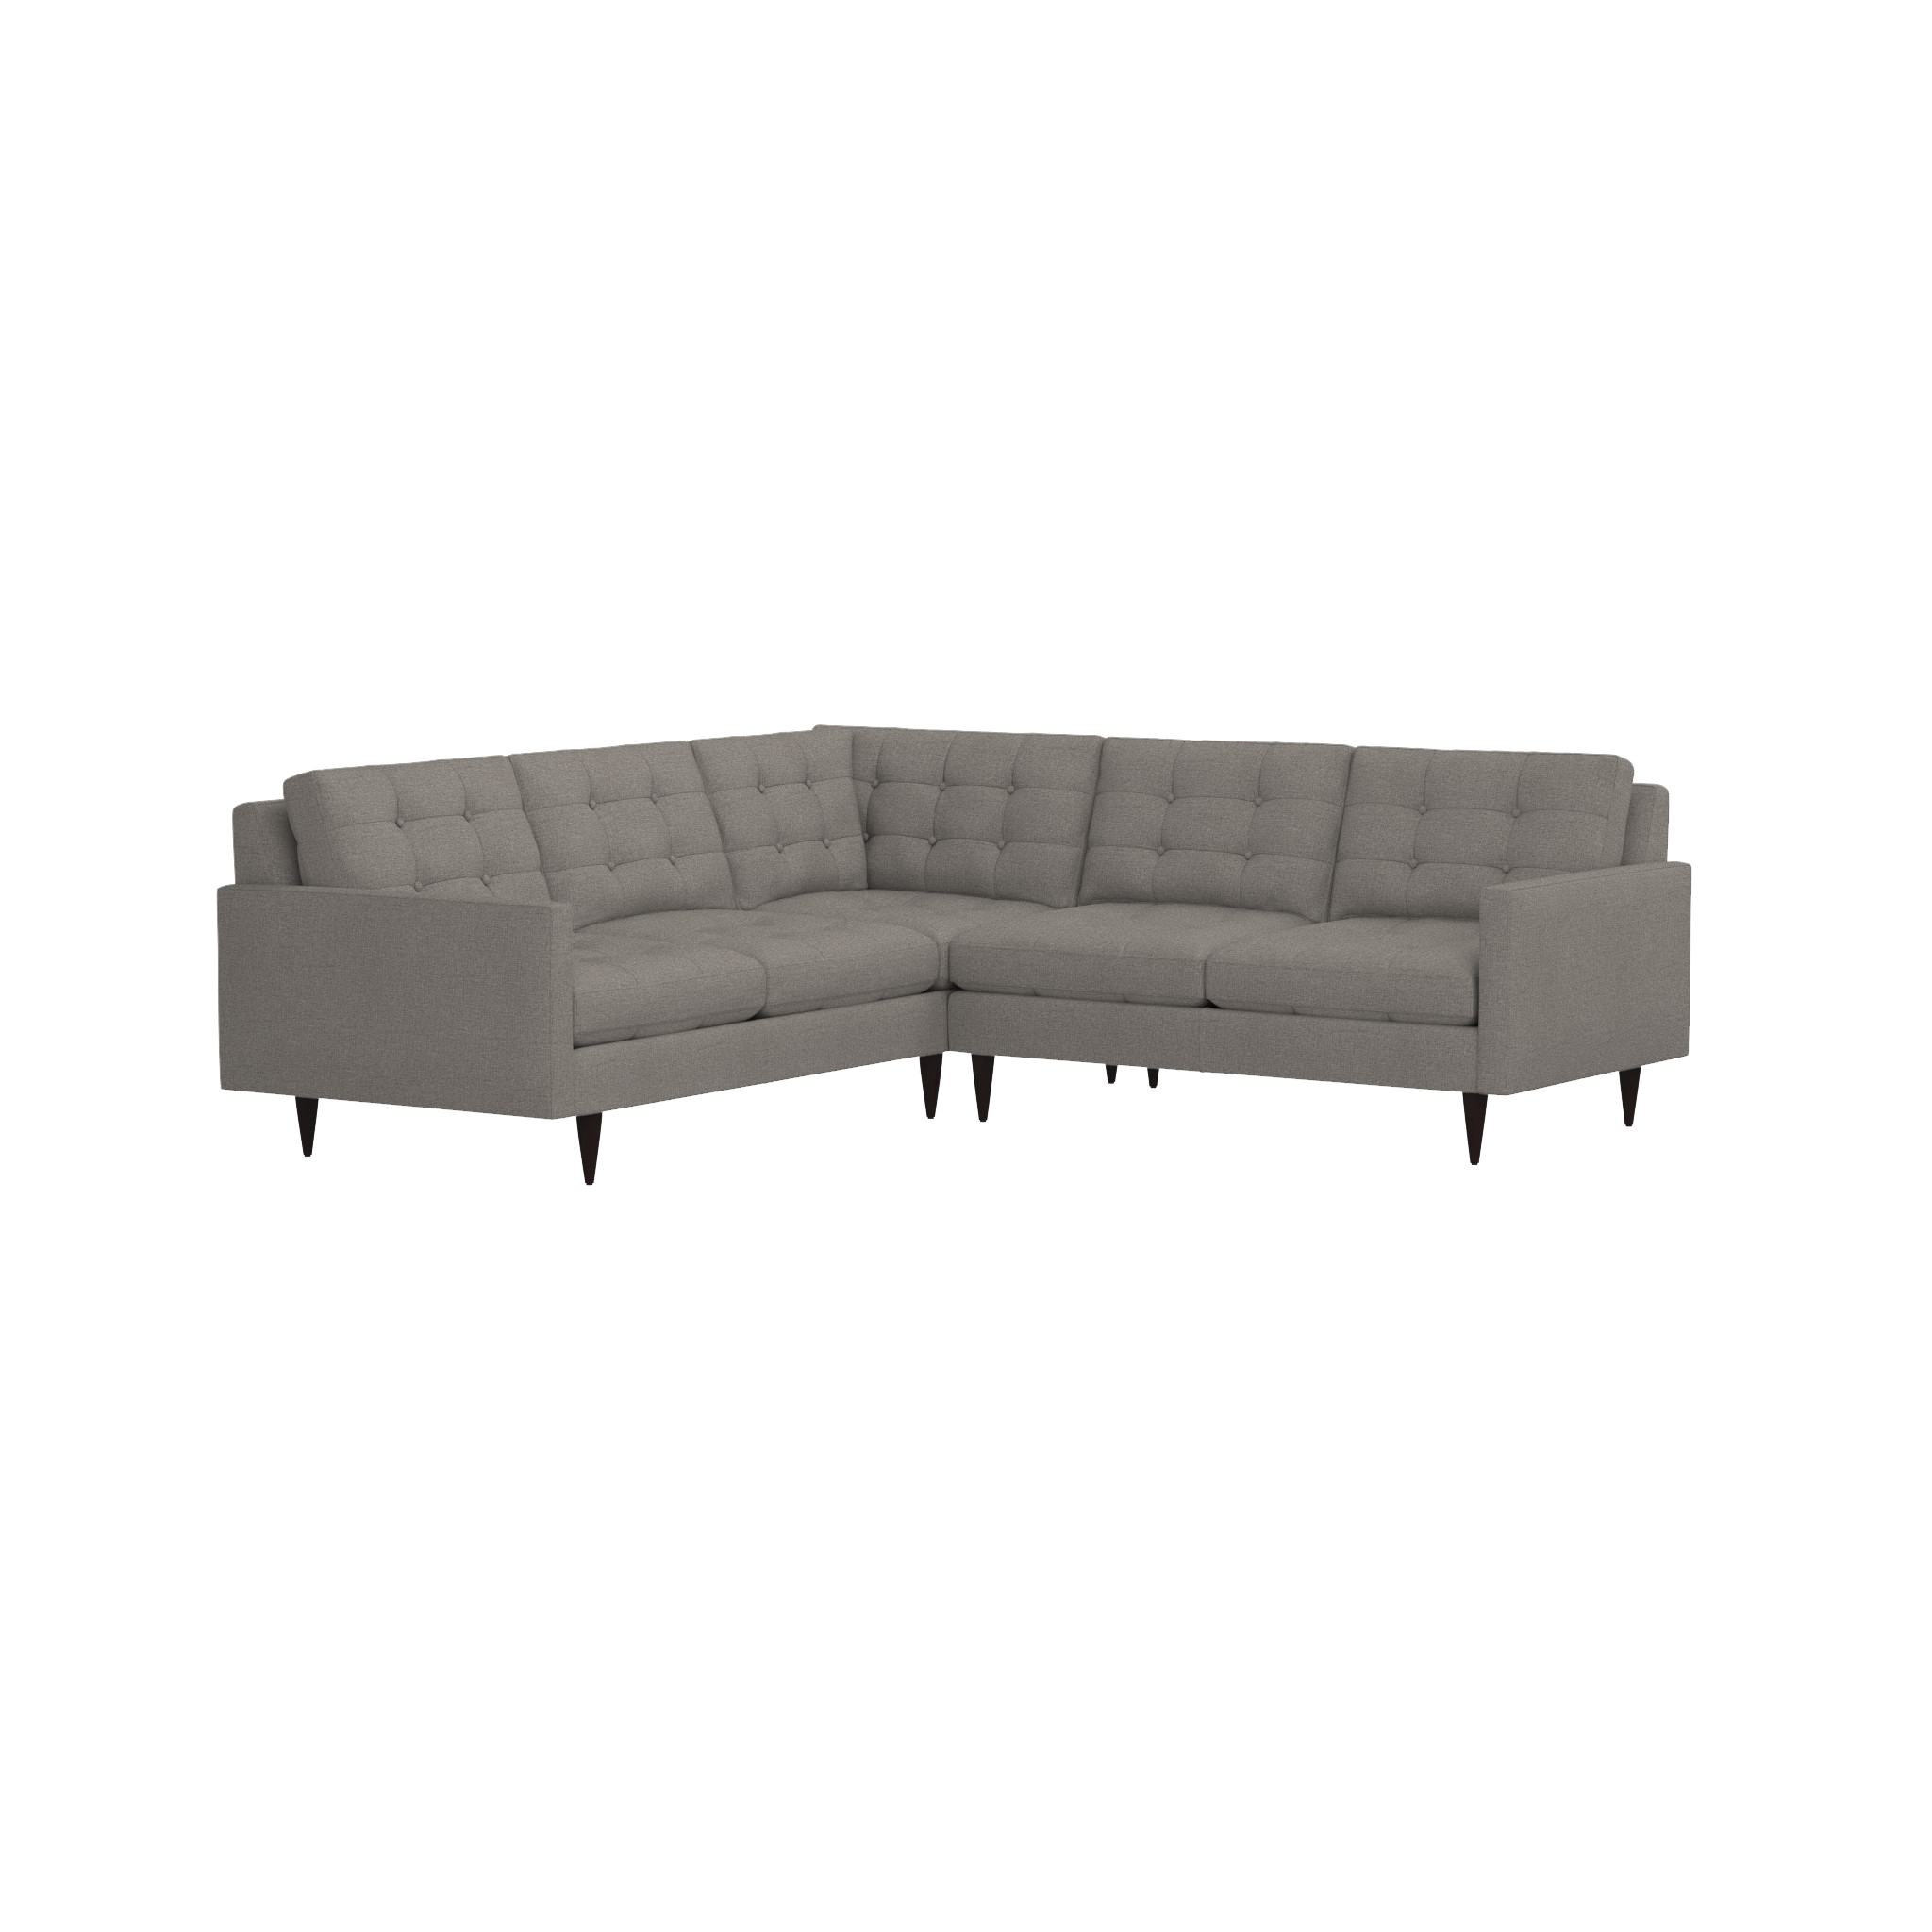 Petrie 2 Piece Corner Sectional Sofa | Crate And Barrel With Regard To Sectional Crate And Barrel (View 13 of 20)